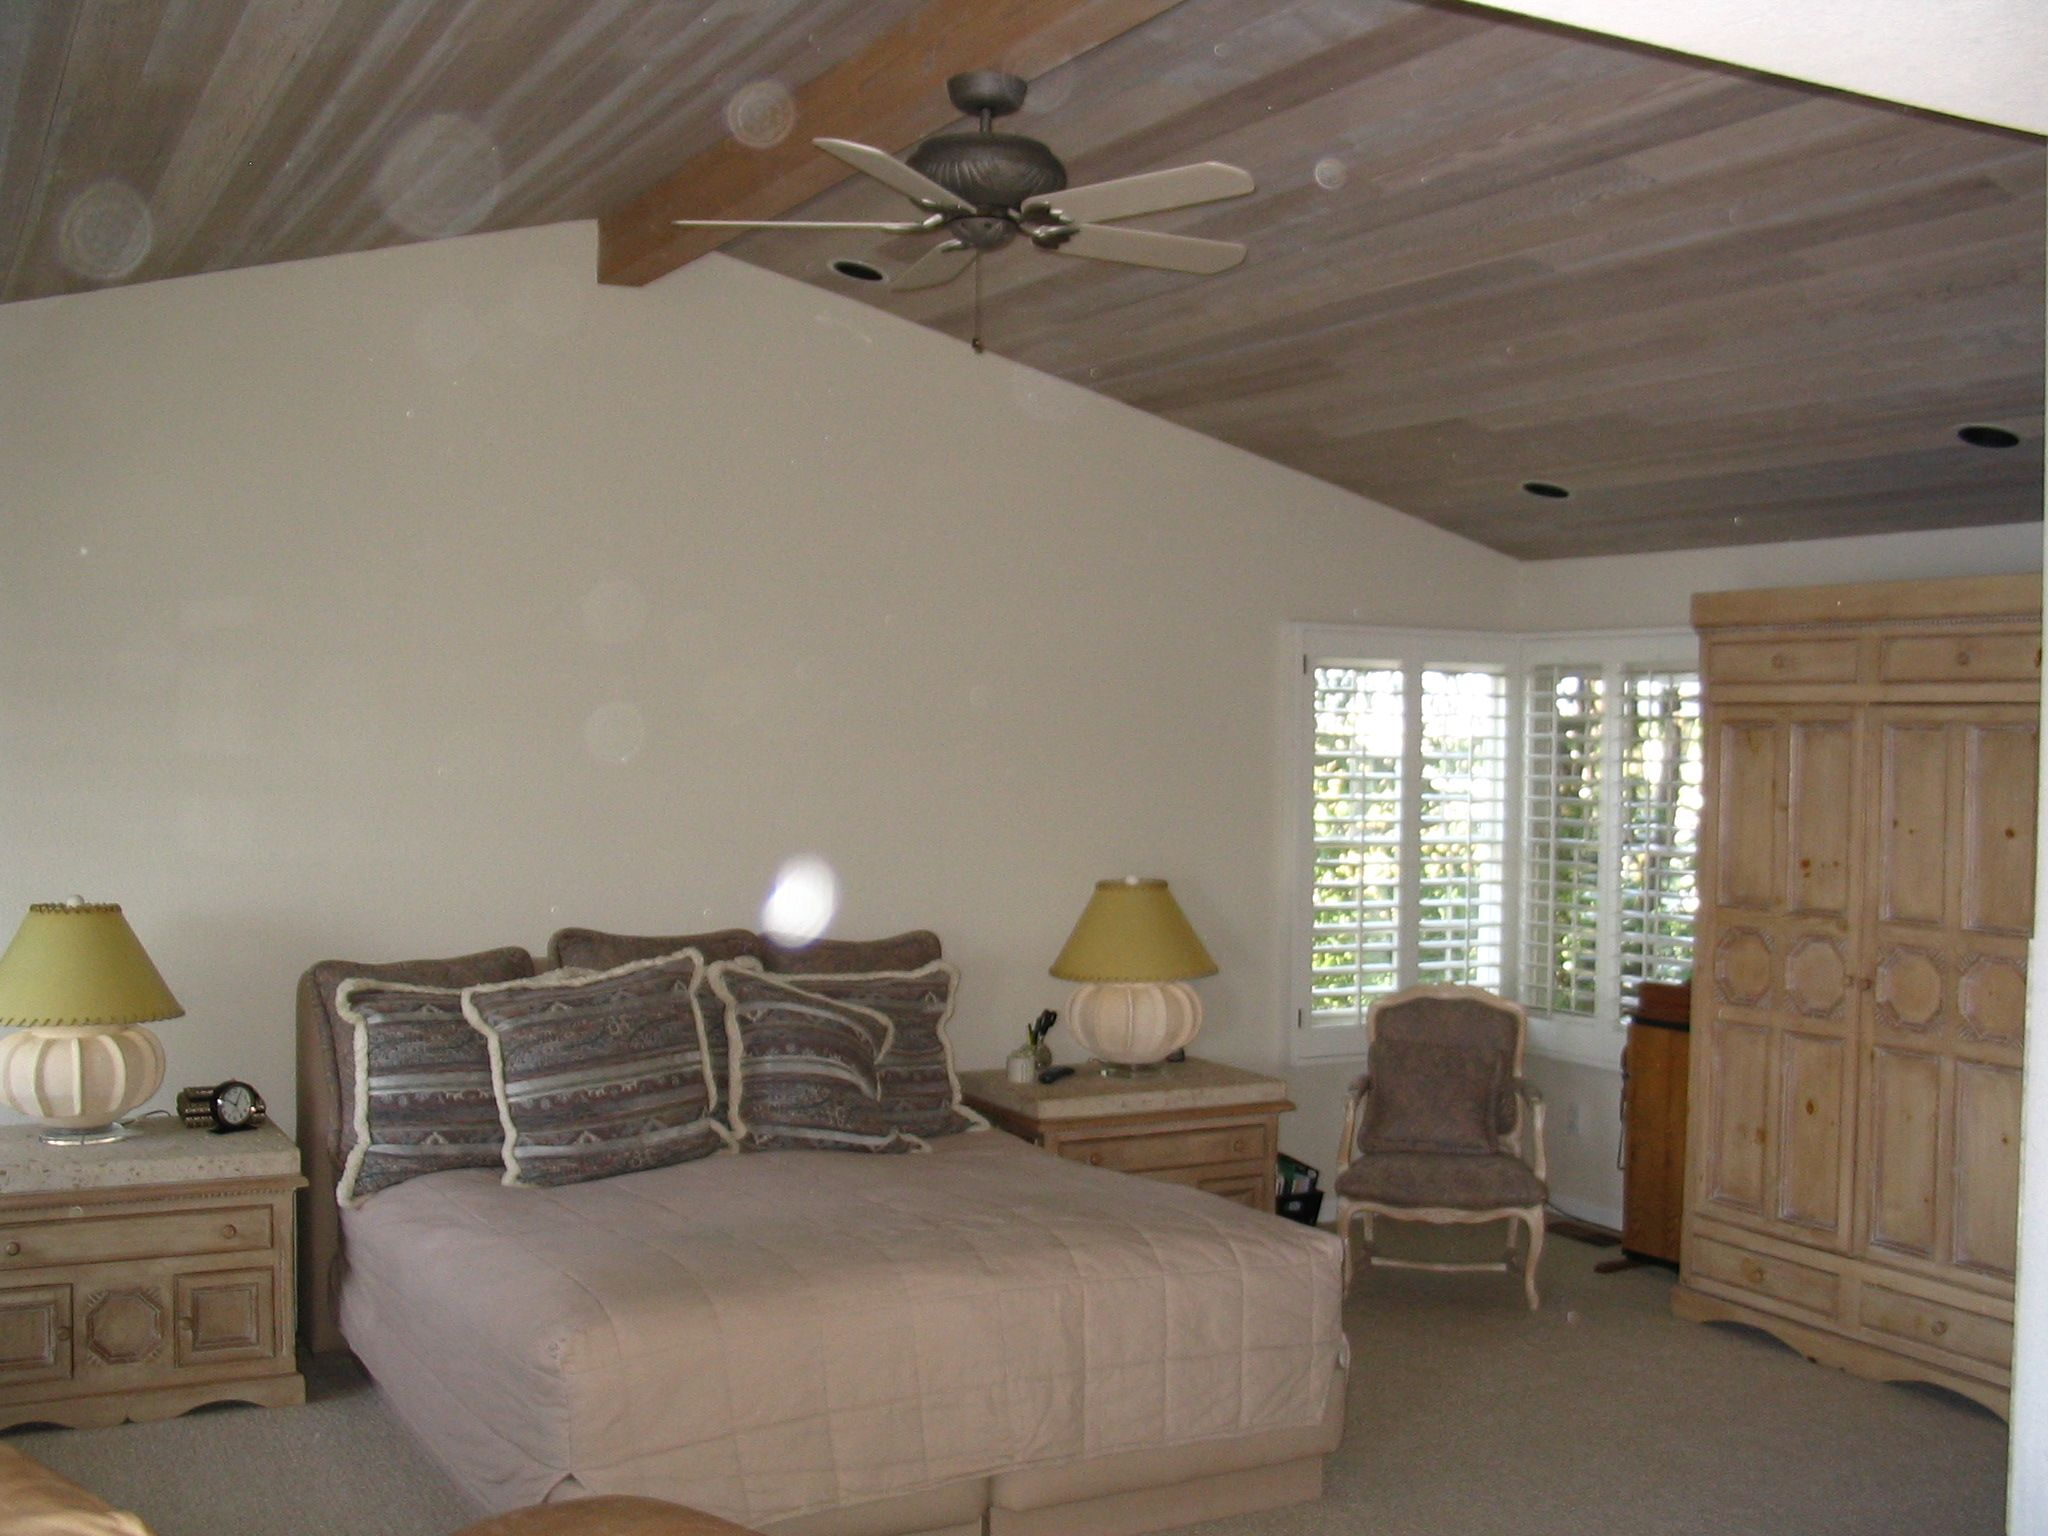 White Washed Wood Ceiling White Washed Design Clique New Home Pinterest Ceiling